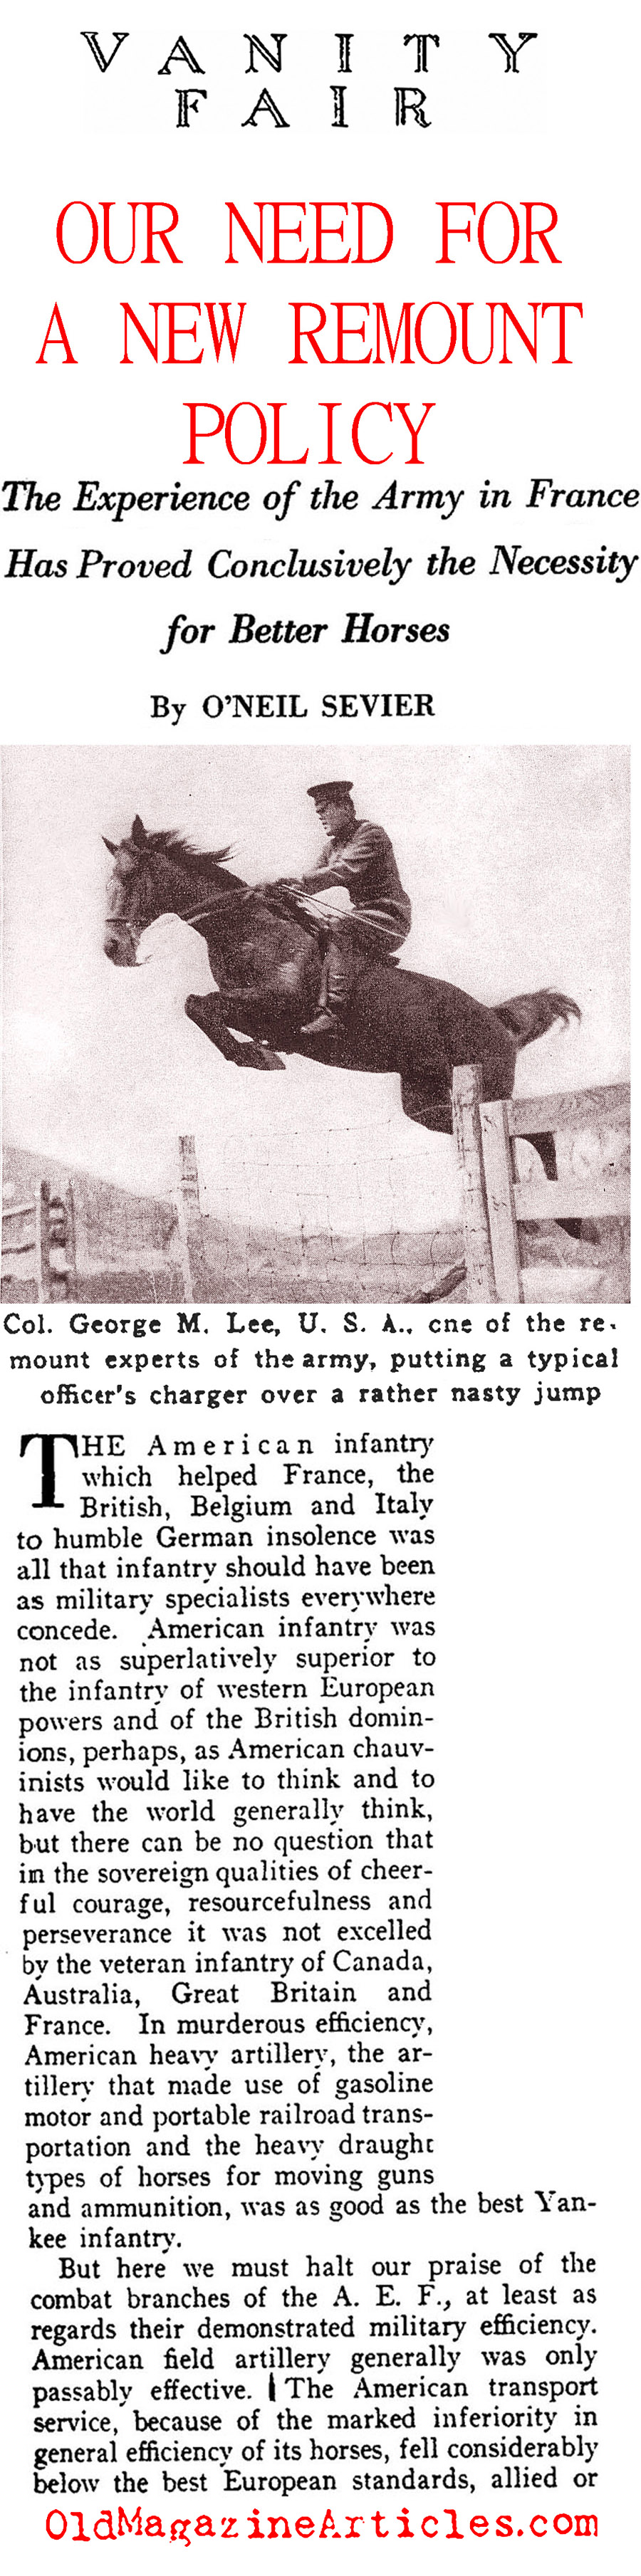 The Case for Cavalry (Vanity Fair Magazine, 1919)